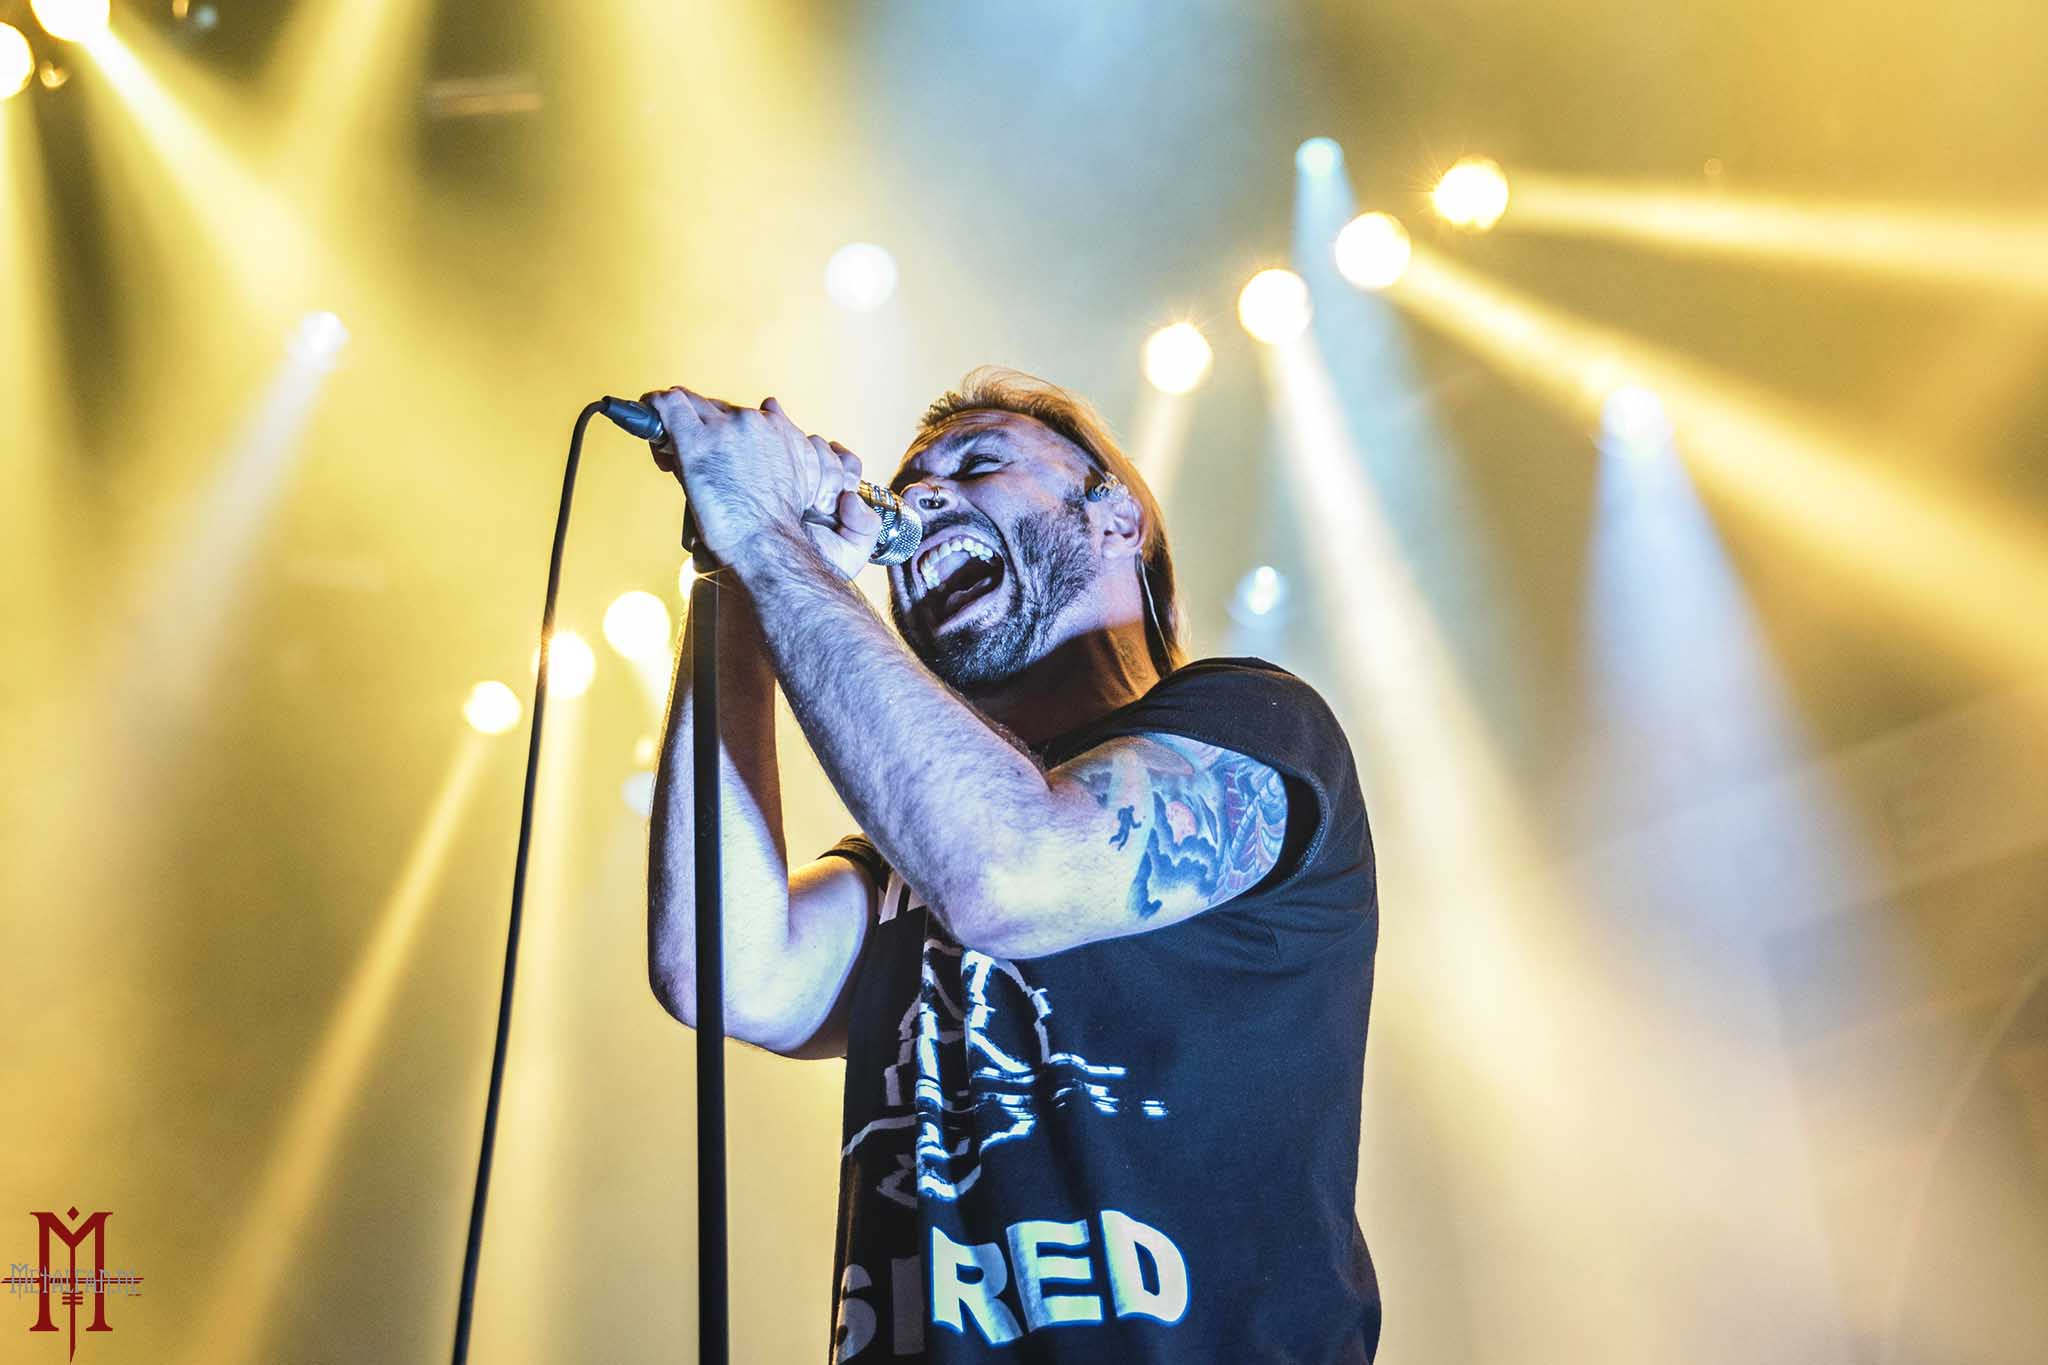 Periphery @ FortaRock In The City 2017